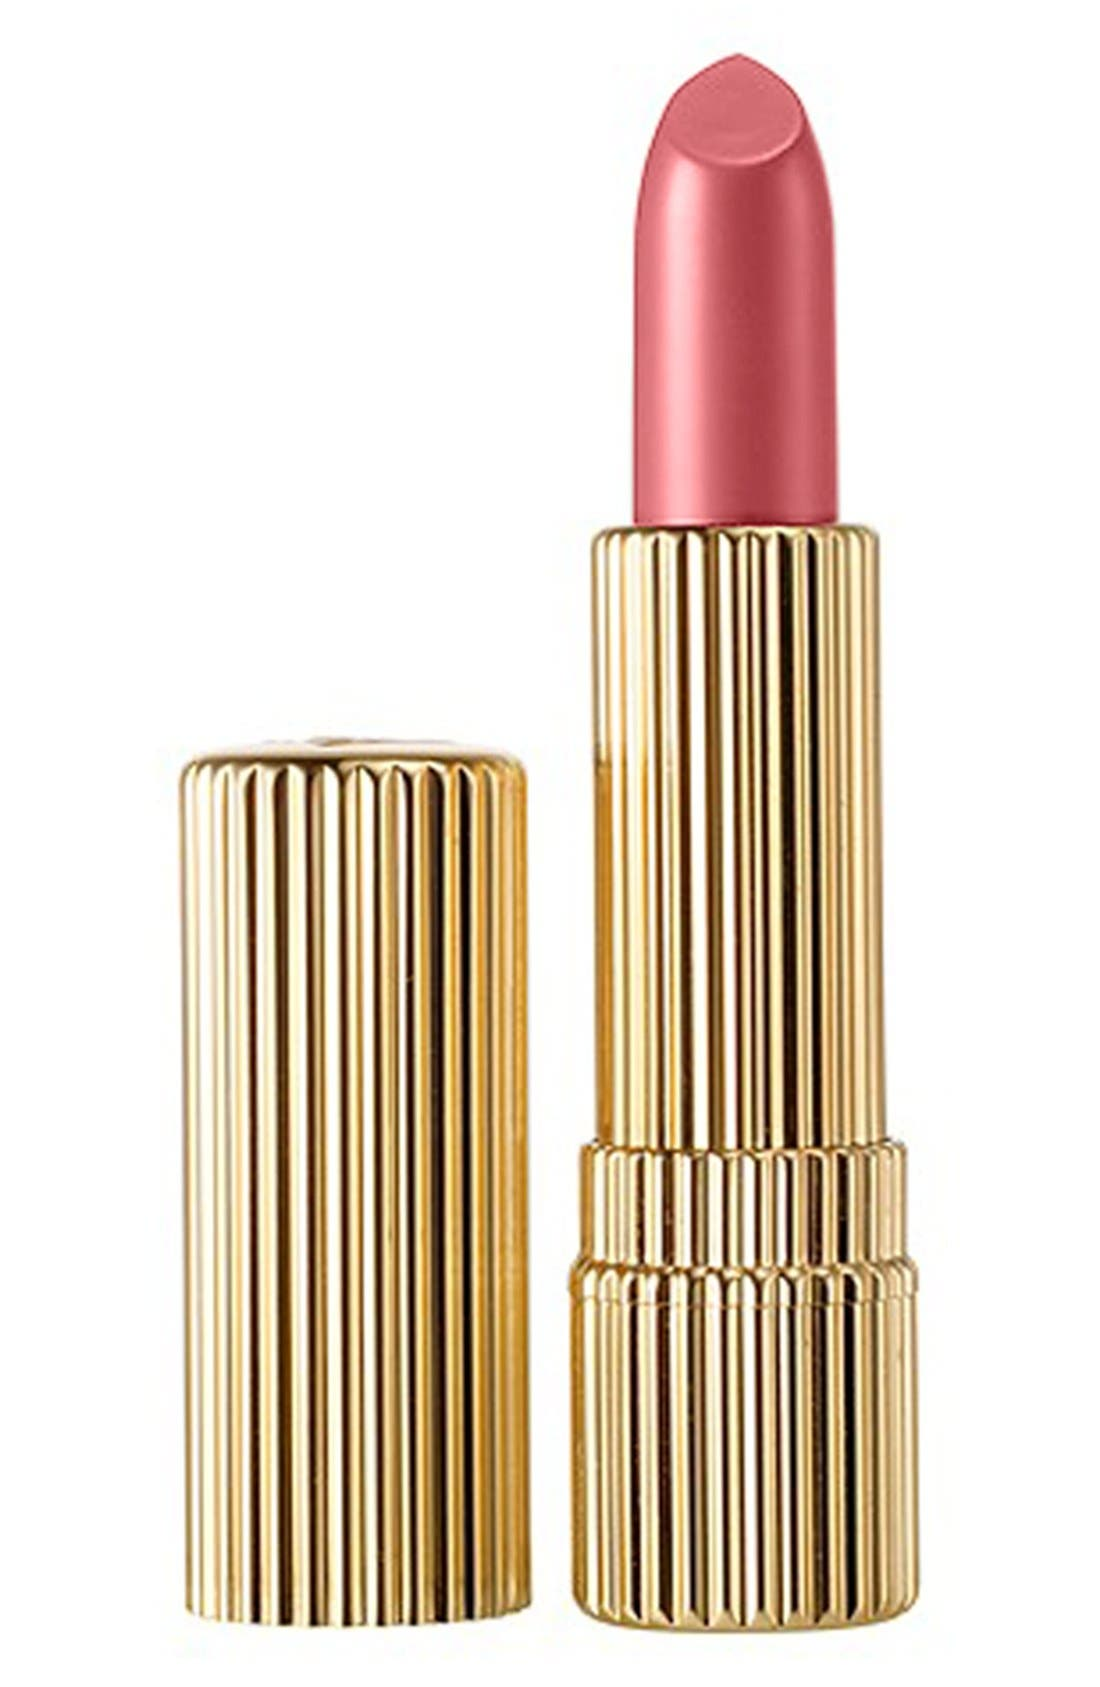 Estee Lauder All Day Lipstick - Frosted Apricot